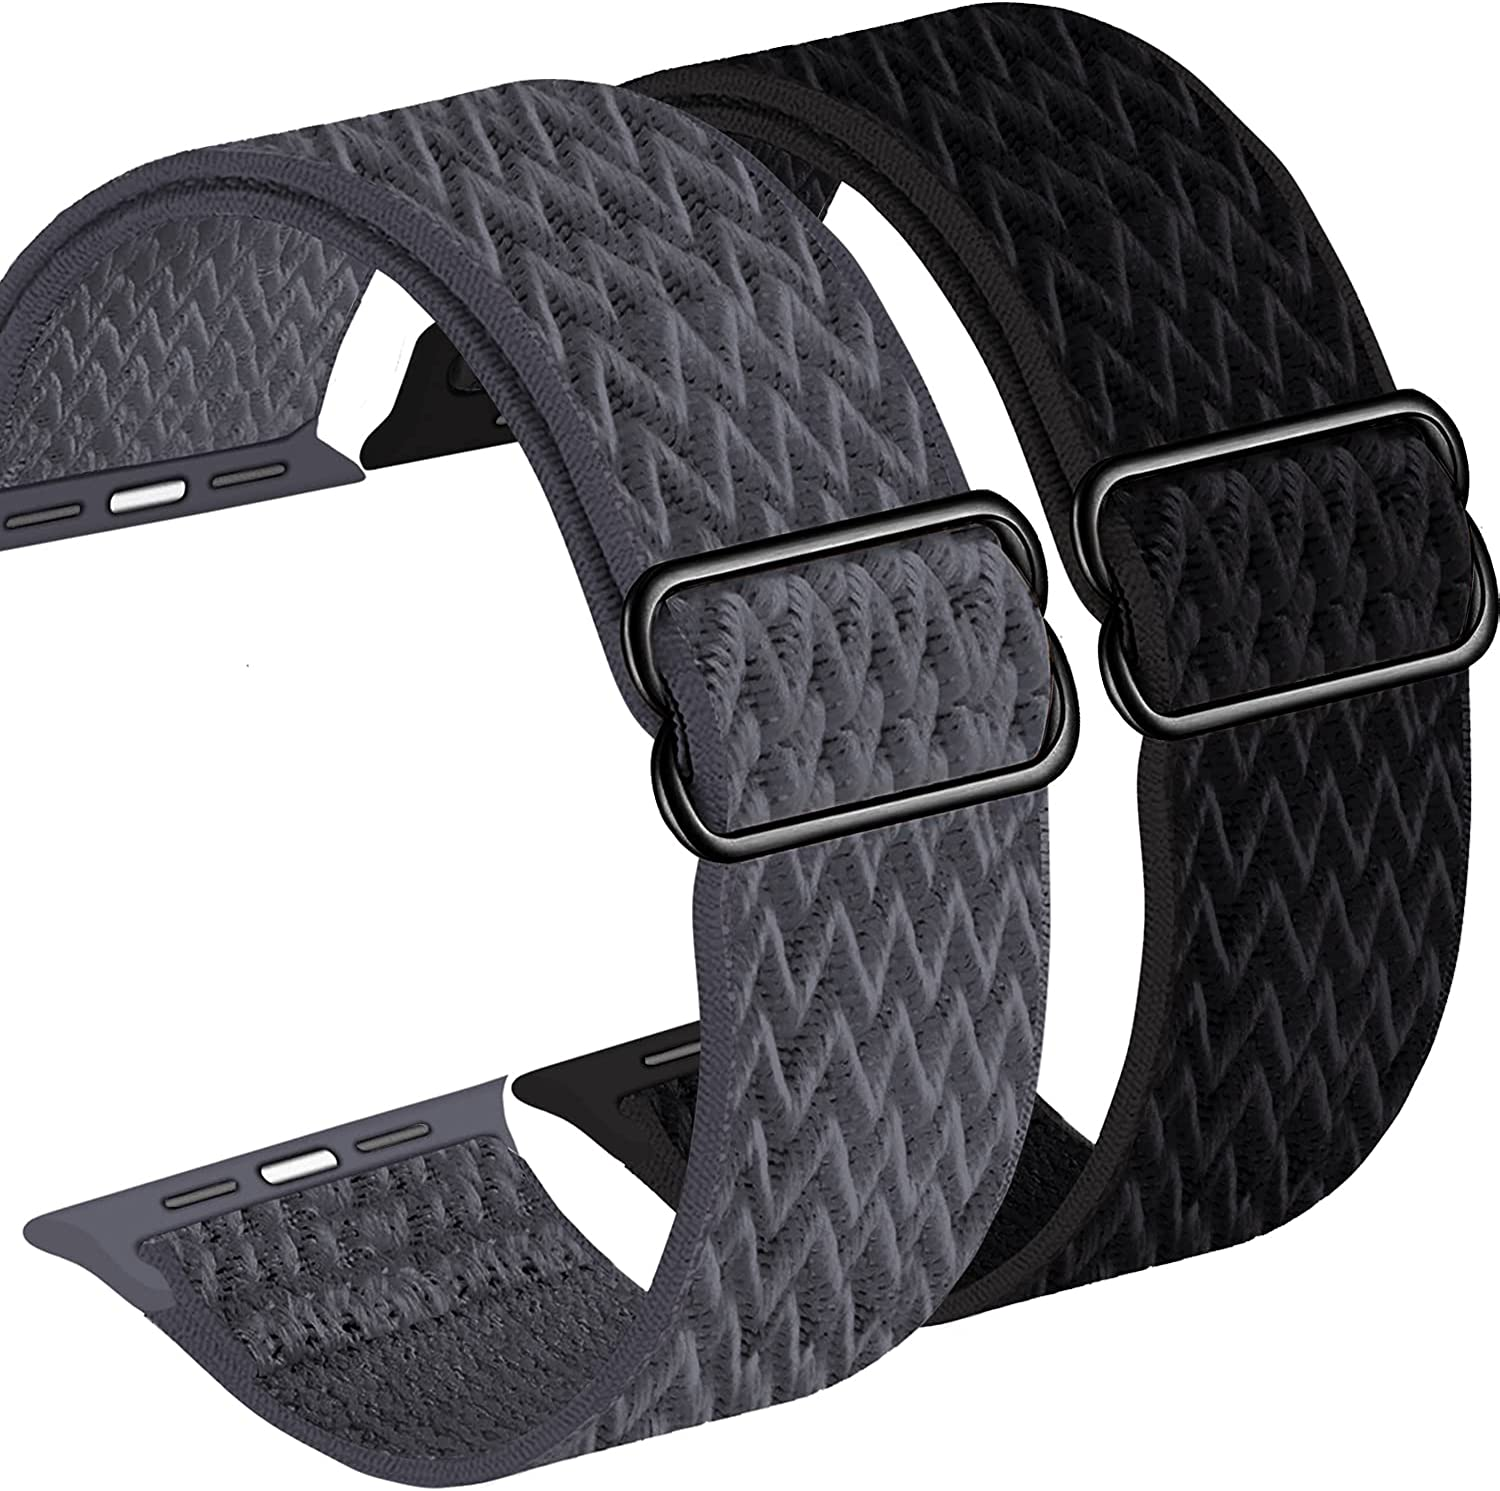 Fnker Stretchy Solo Loop Strap Compatible with Apple Watch Bands 38mm 40mm 42mm 44mm,Adjustable Nylon Braided Sport Elastic for Women Men Compatible with iWatch Series 6/SE/5/4/3/2/1